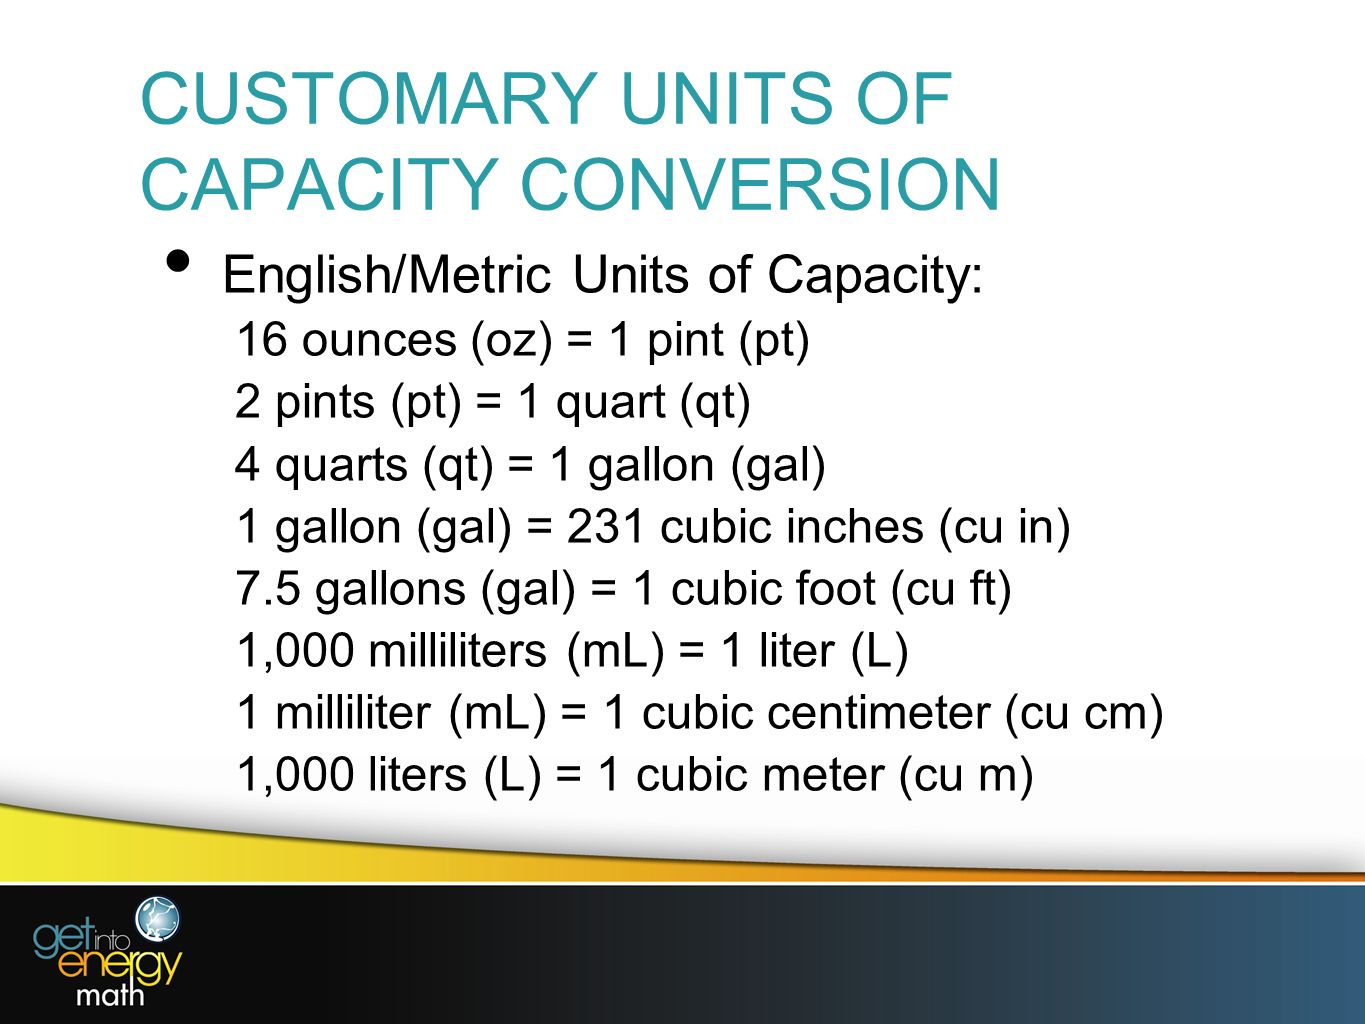 Fluid Ounces To Liter Conversion Chart